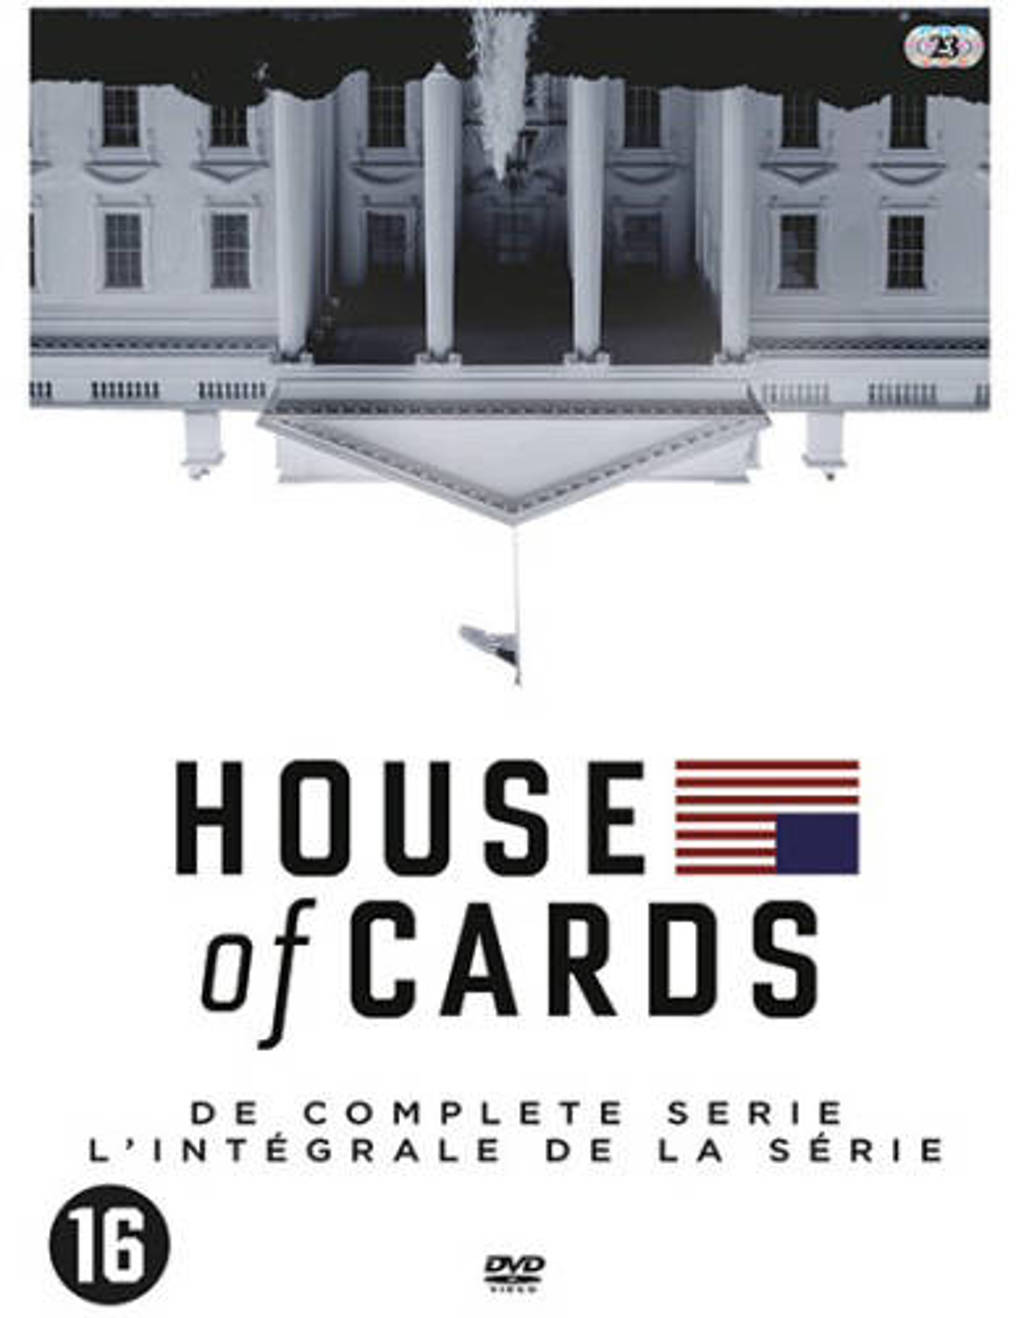 House of cards -  Complete collection (DVD)